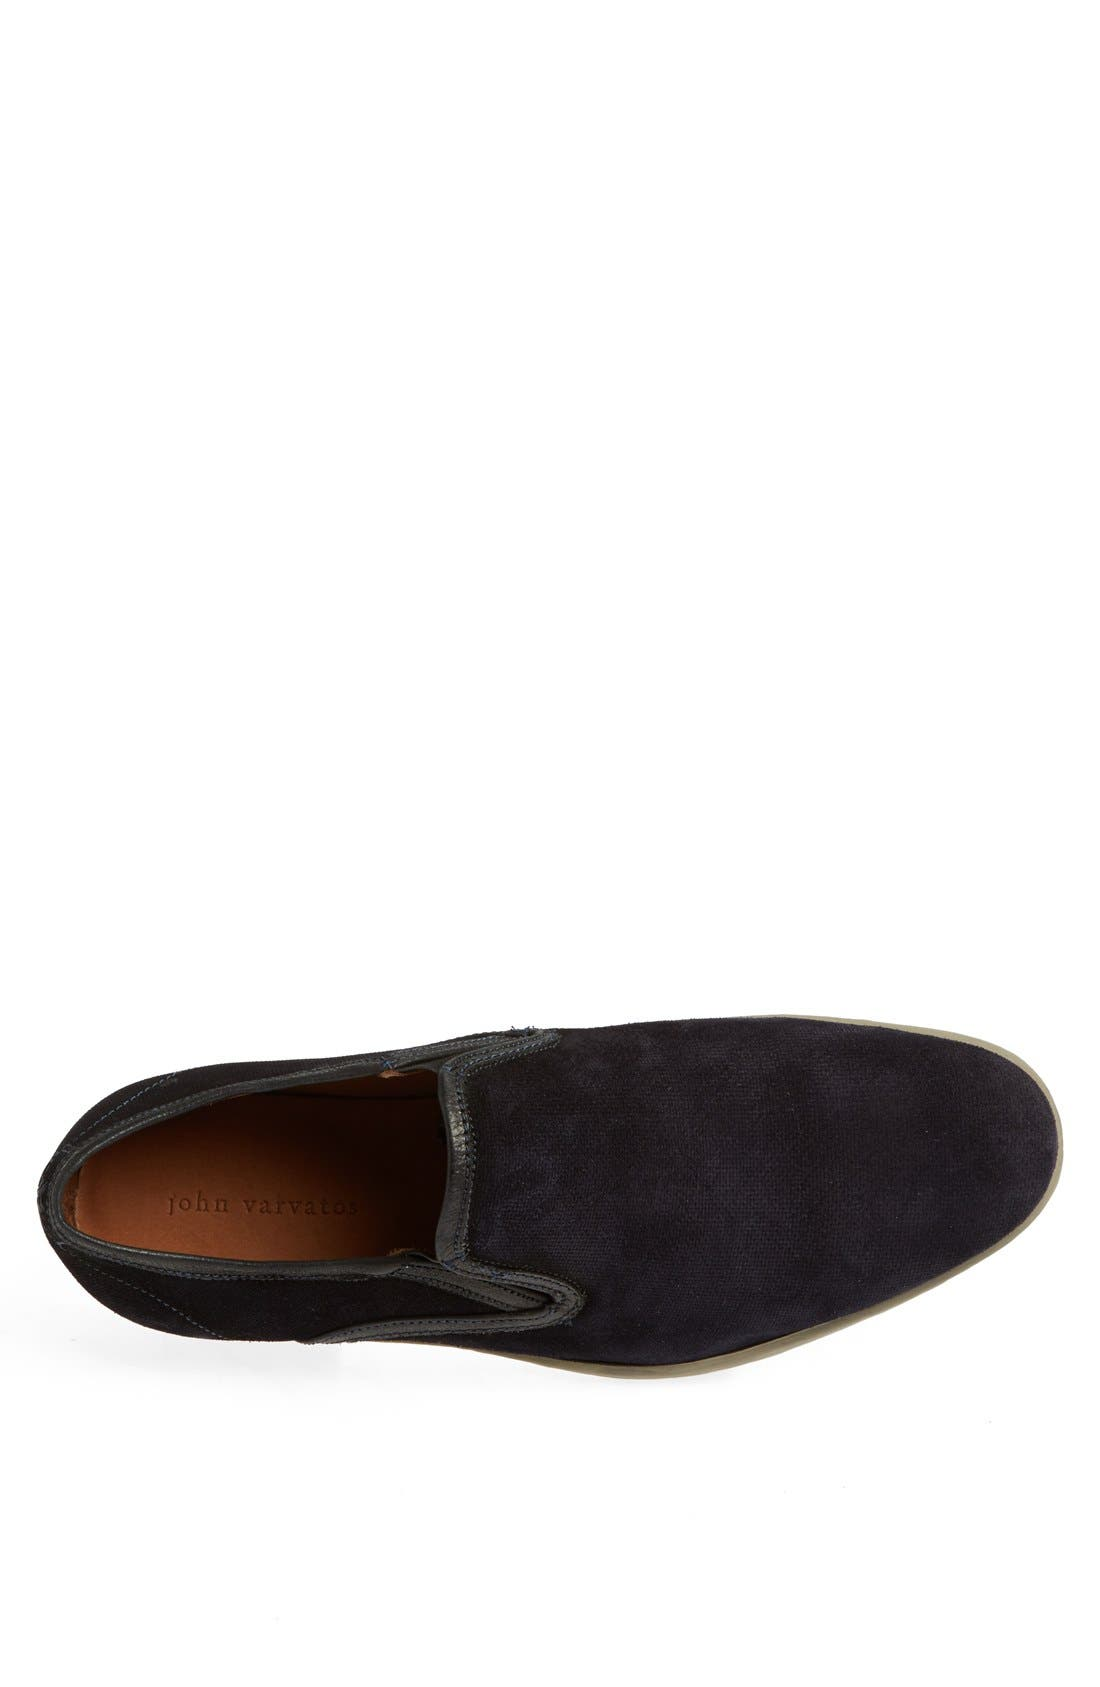 Alternate Image 3  - John Varvatos Collection 'Dylan' Venetian Loafer